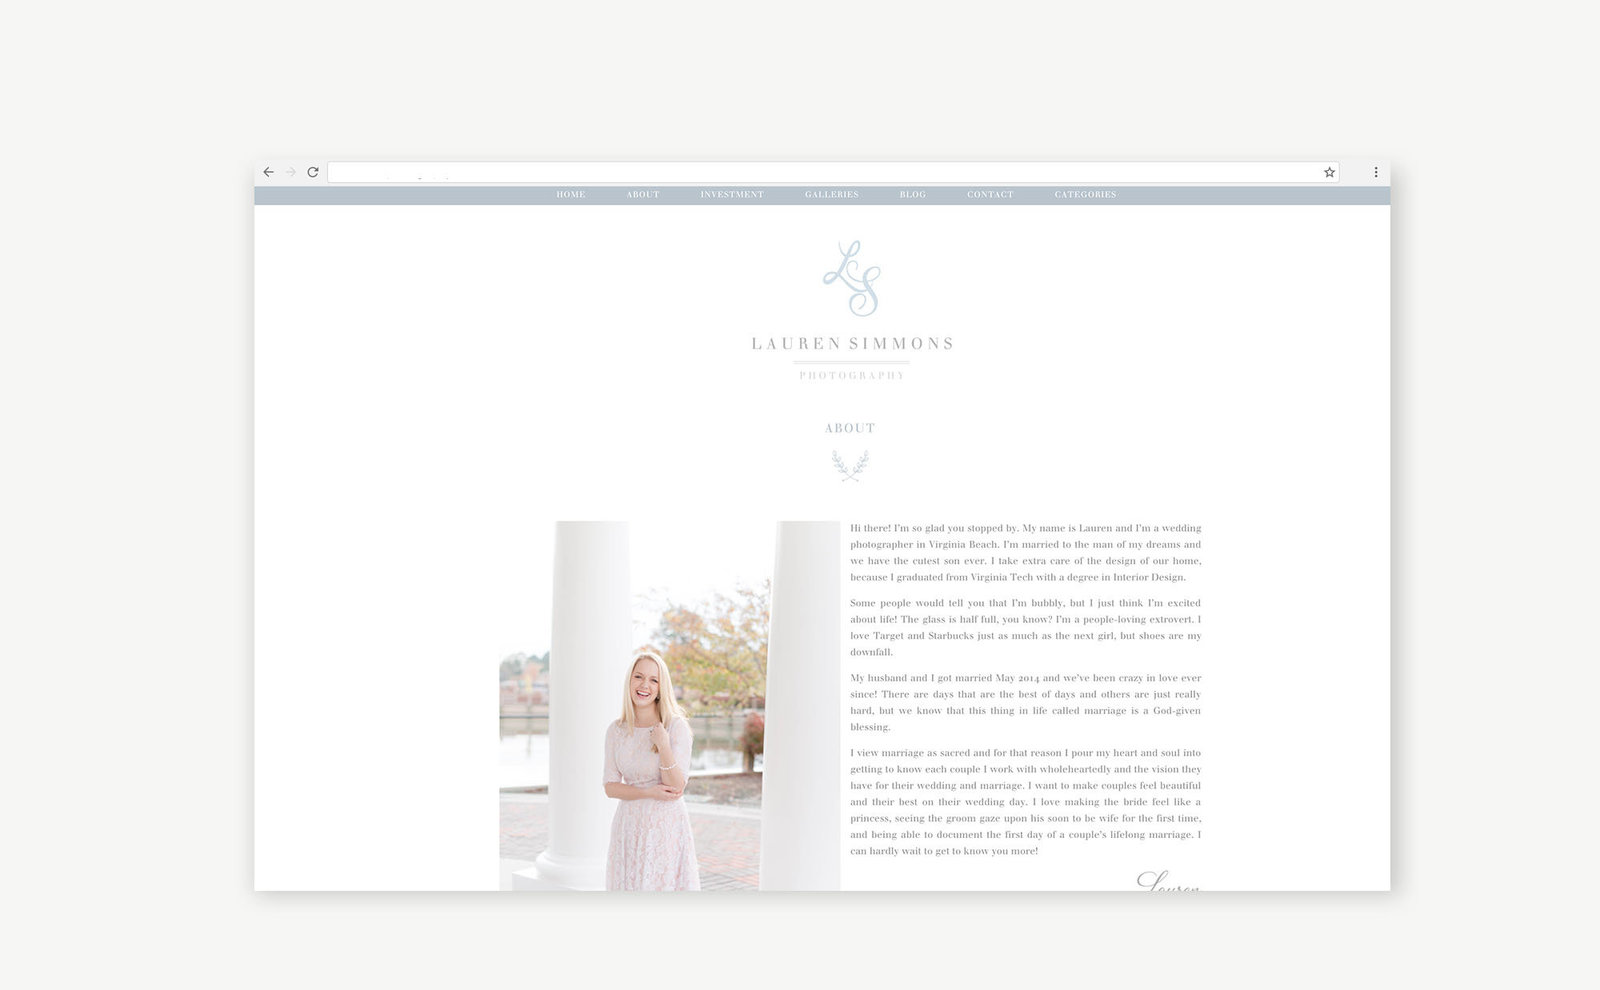 branding-for-photographers-web-design-lauren-simmons-02